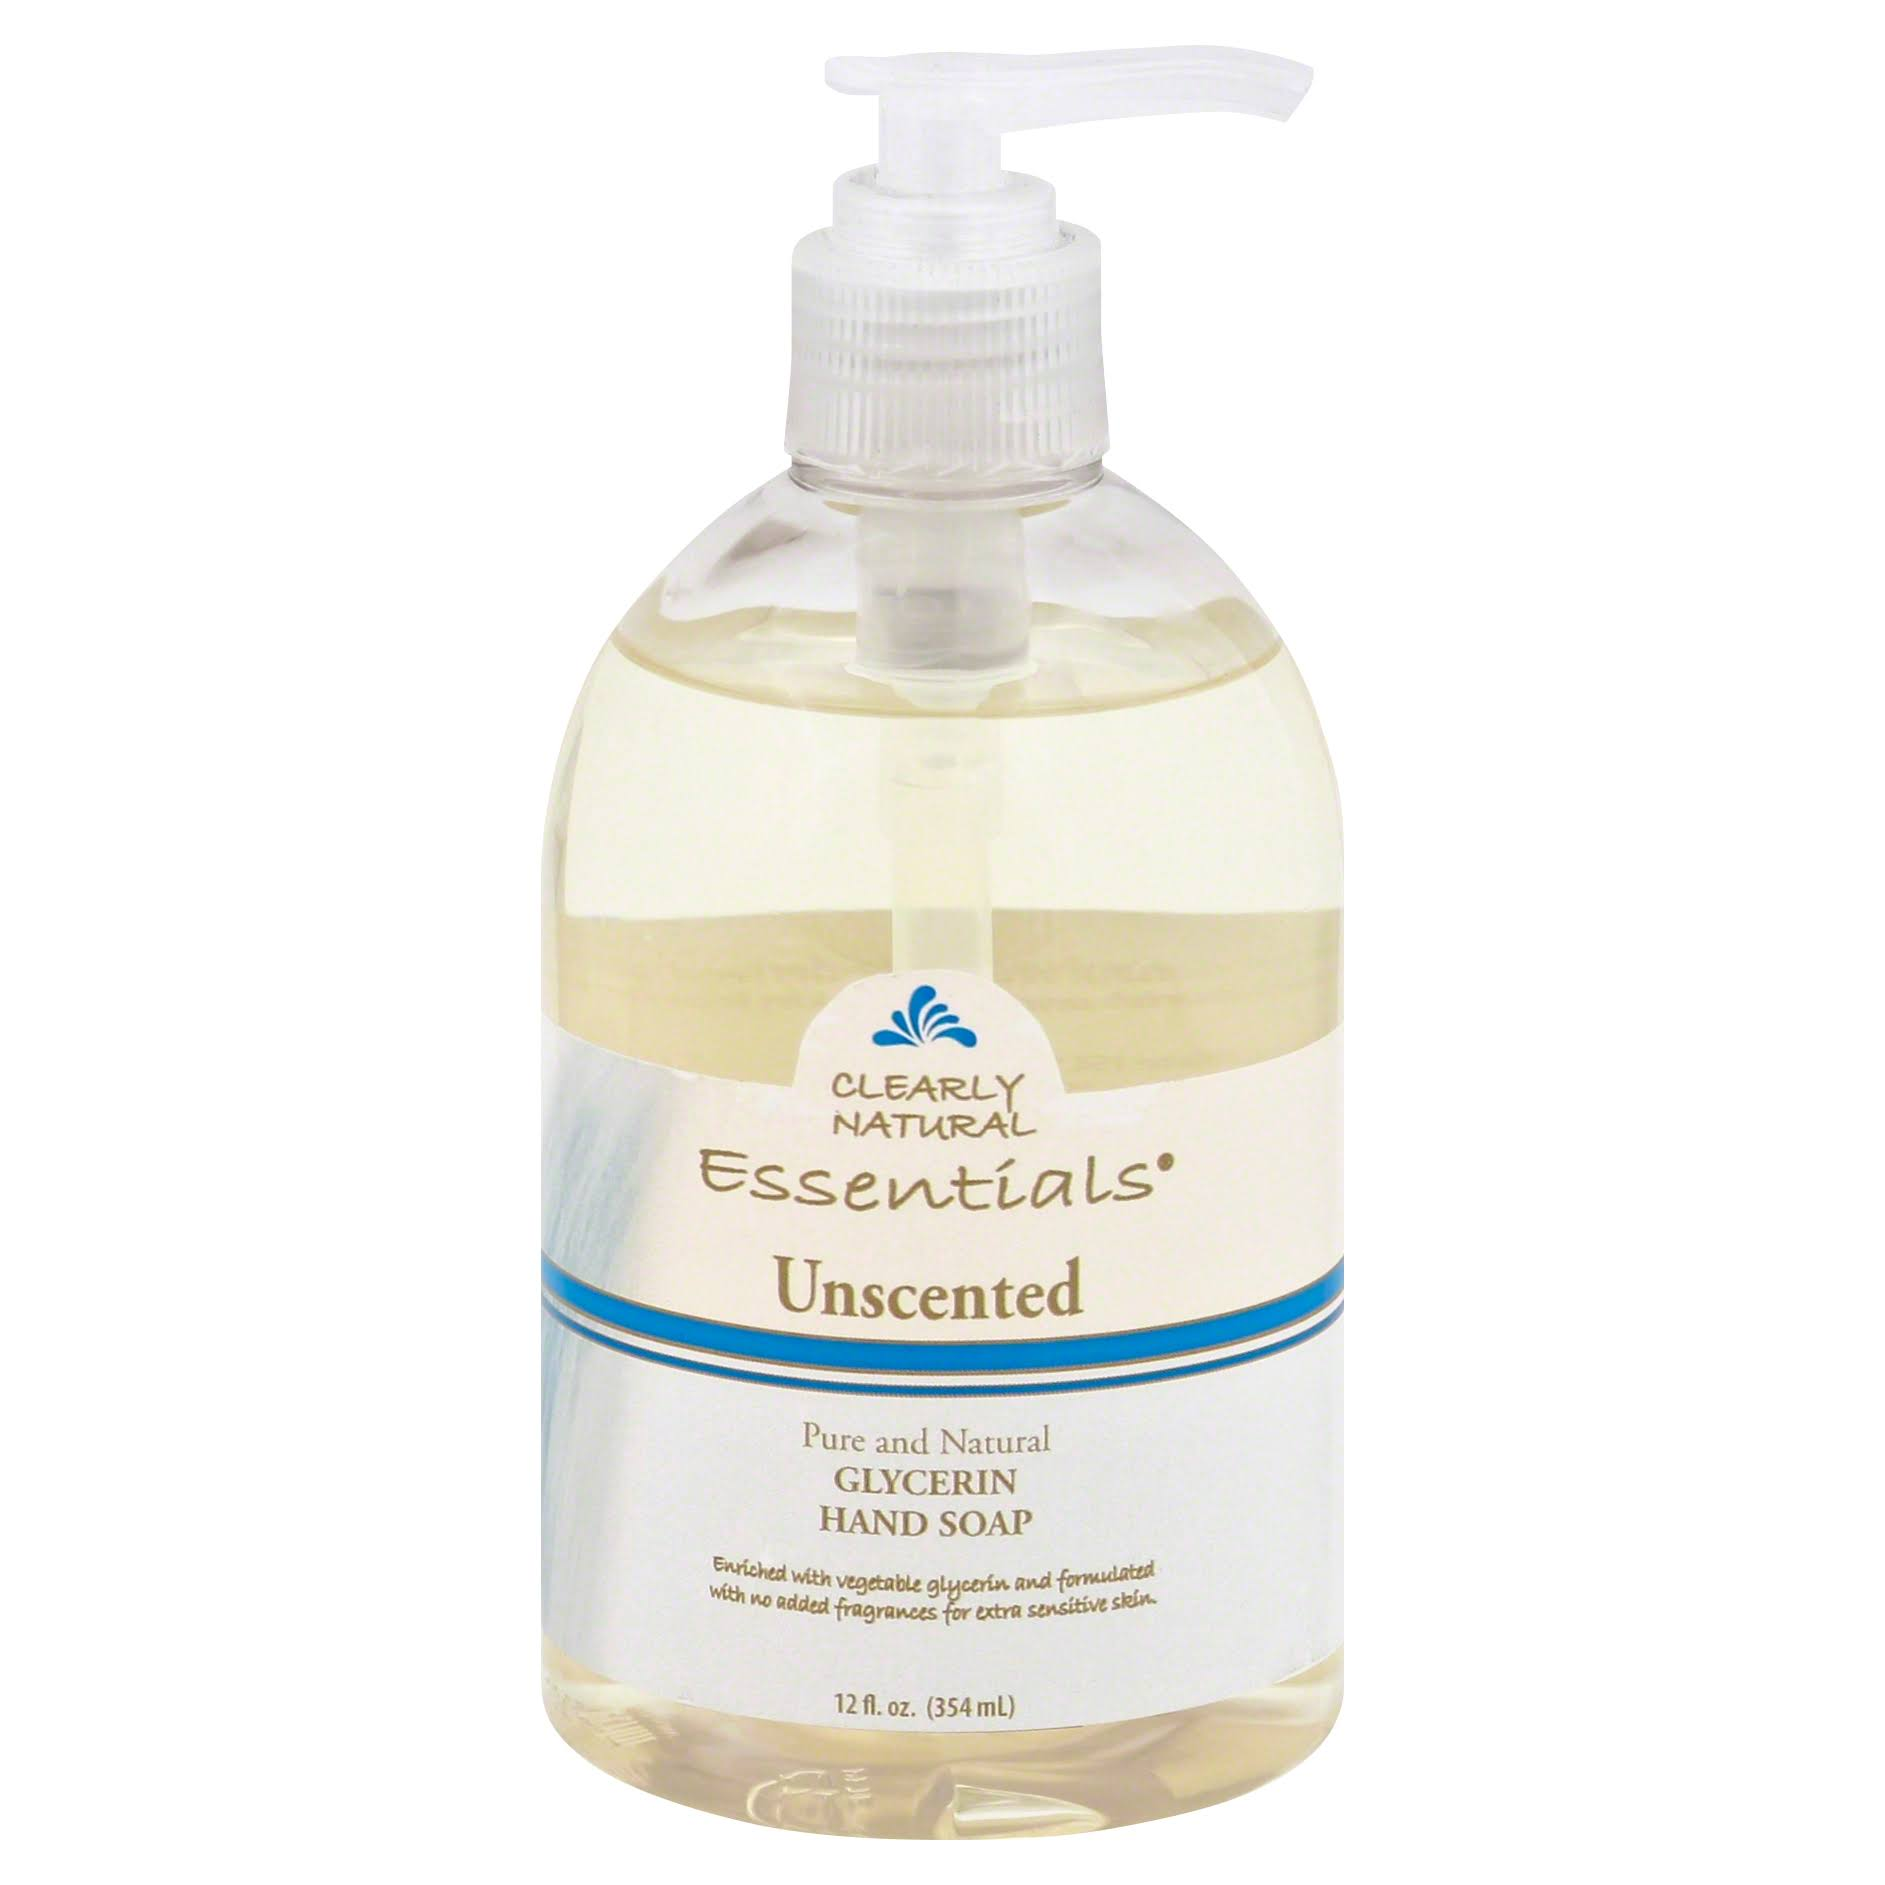 Clearly Natural Essentials Glycerine Hand Soap - Unscented, 12 oz